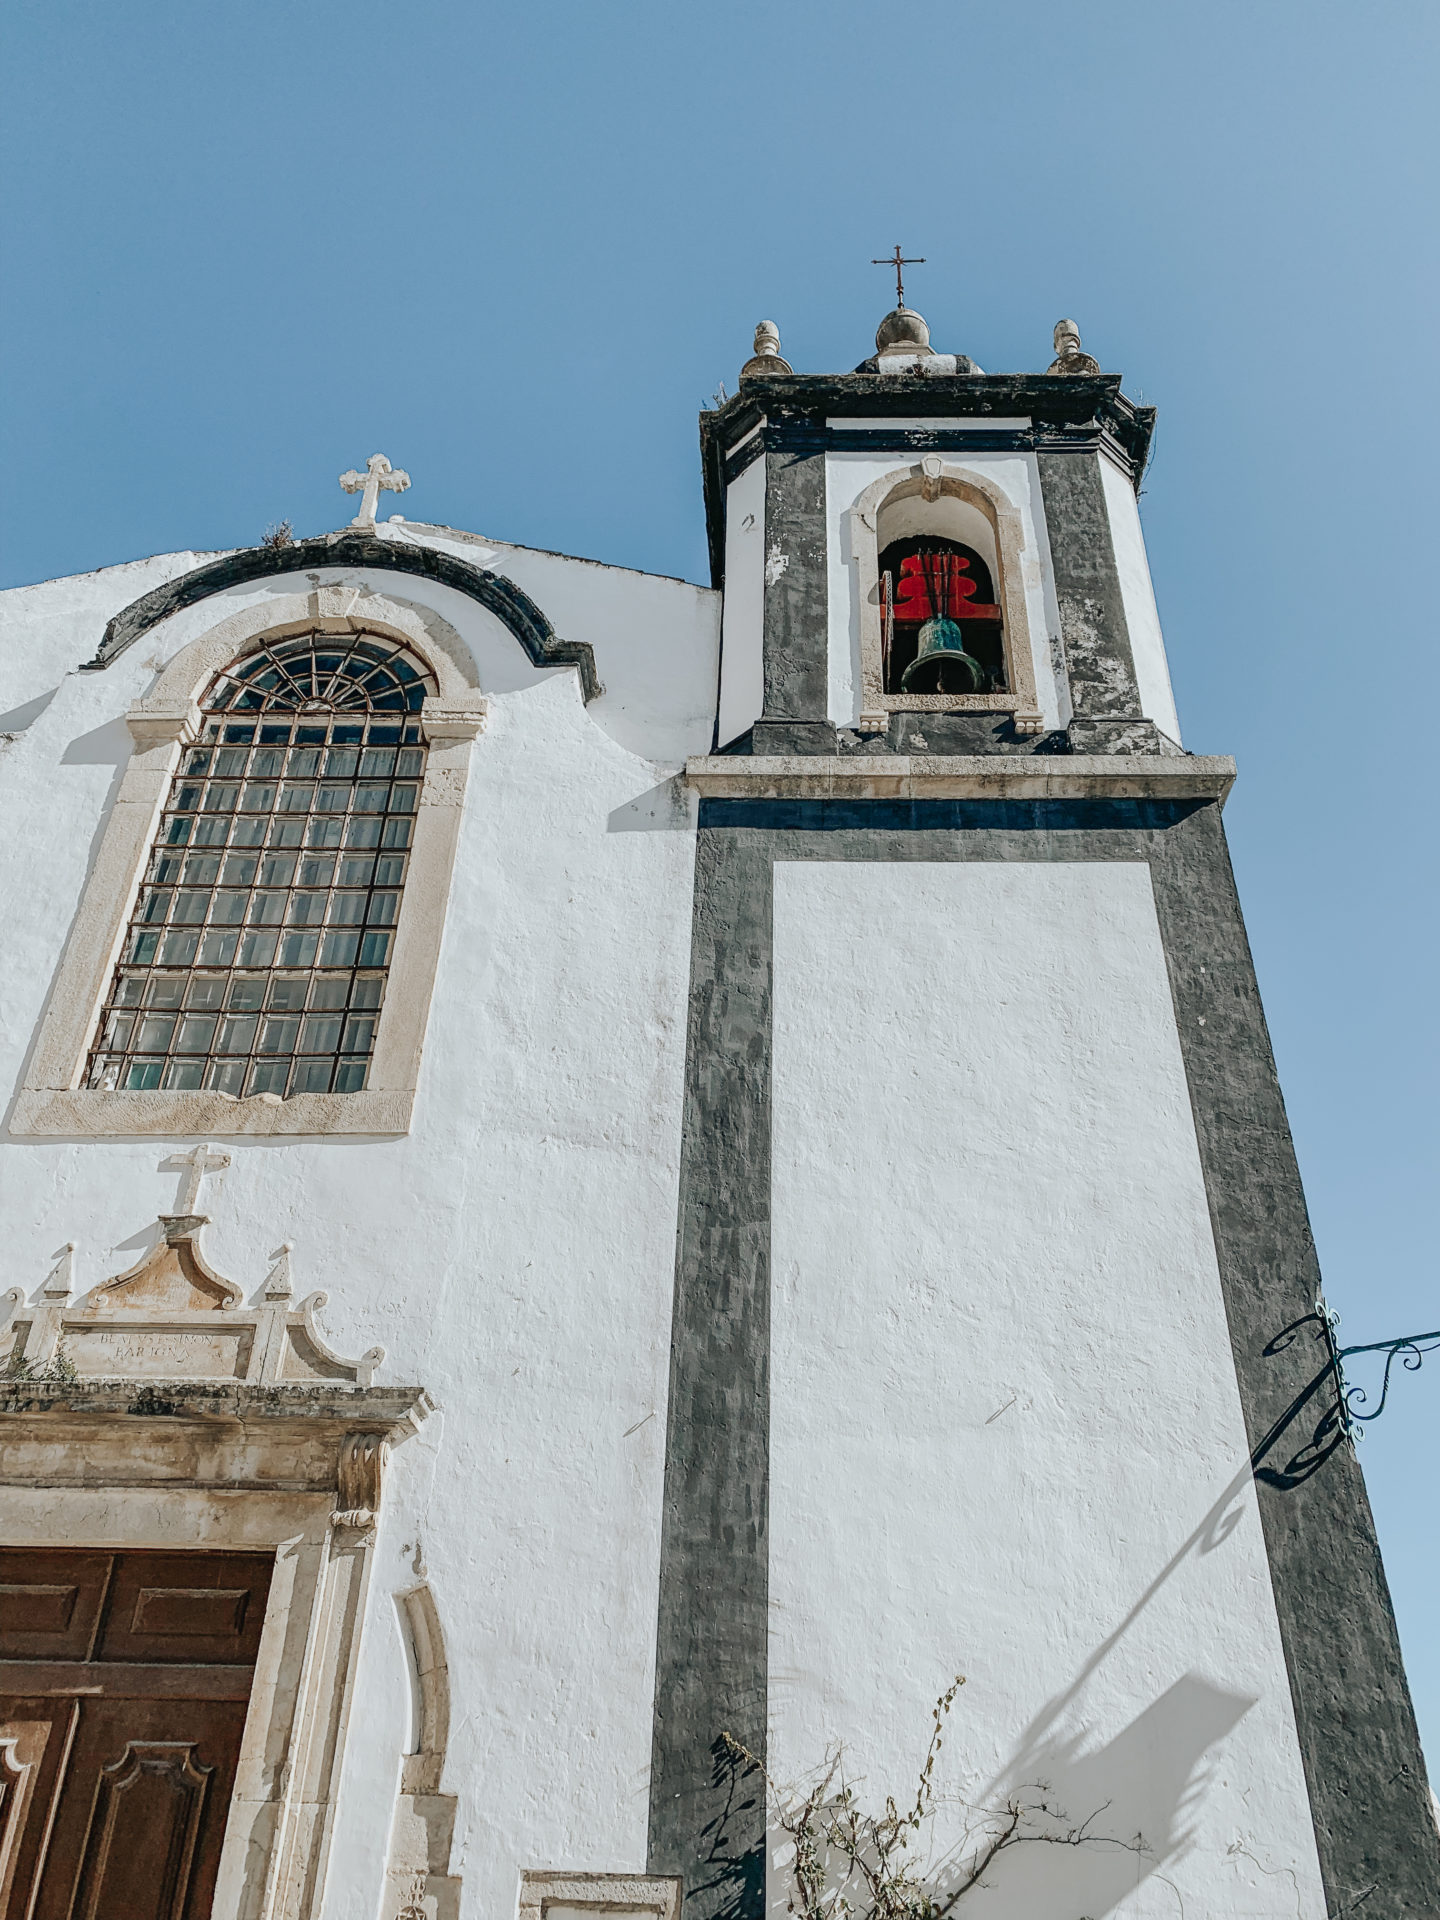 A Day In Óbidos Portugal - Church - thecasualfree.com